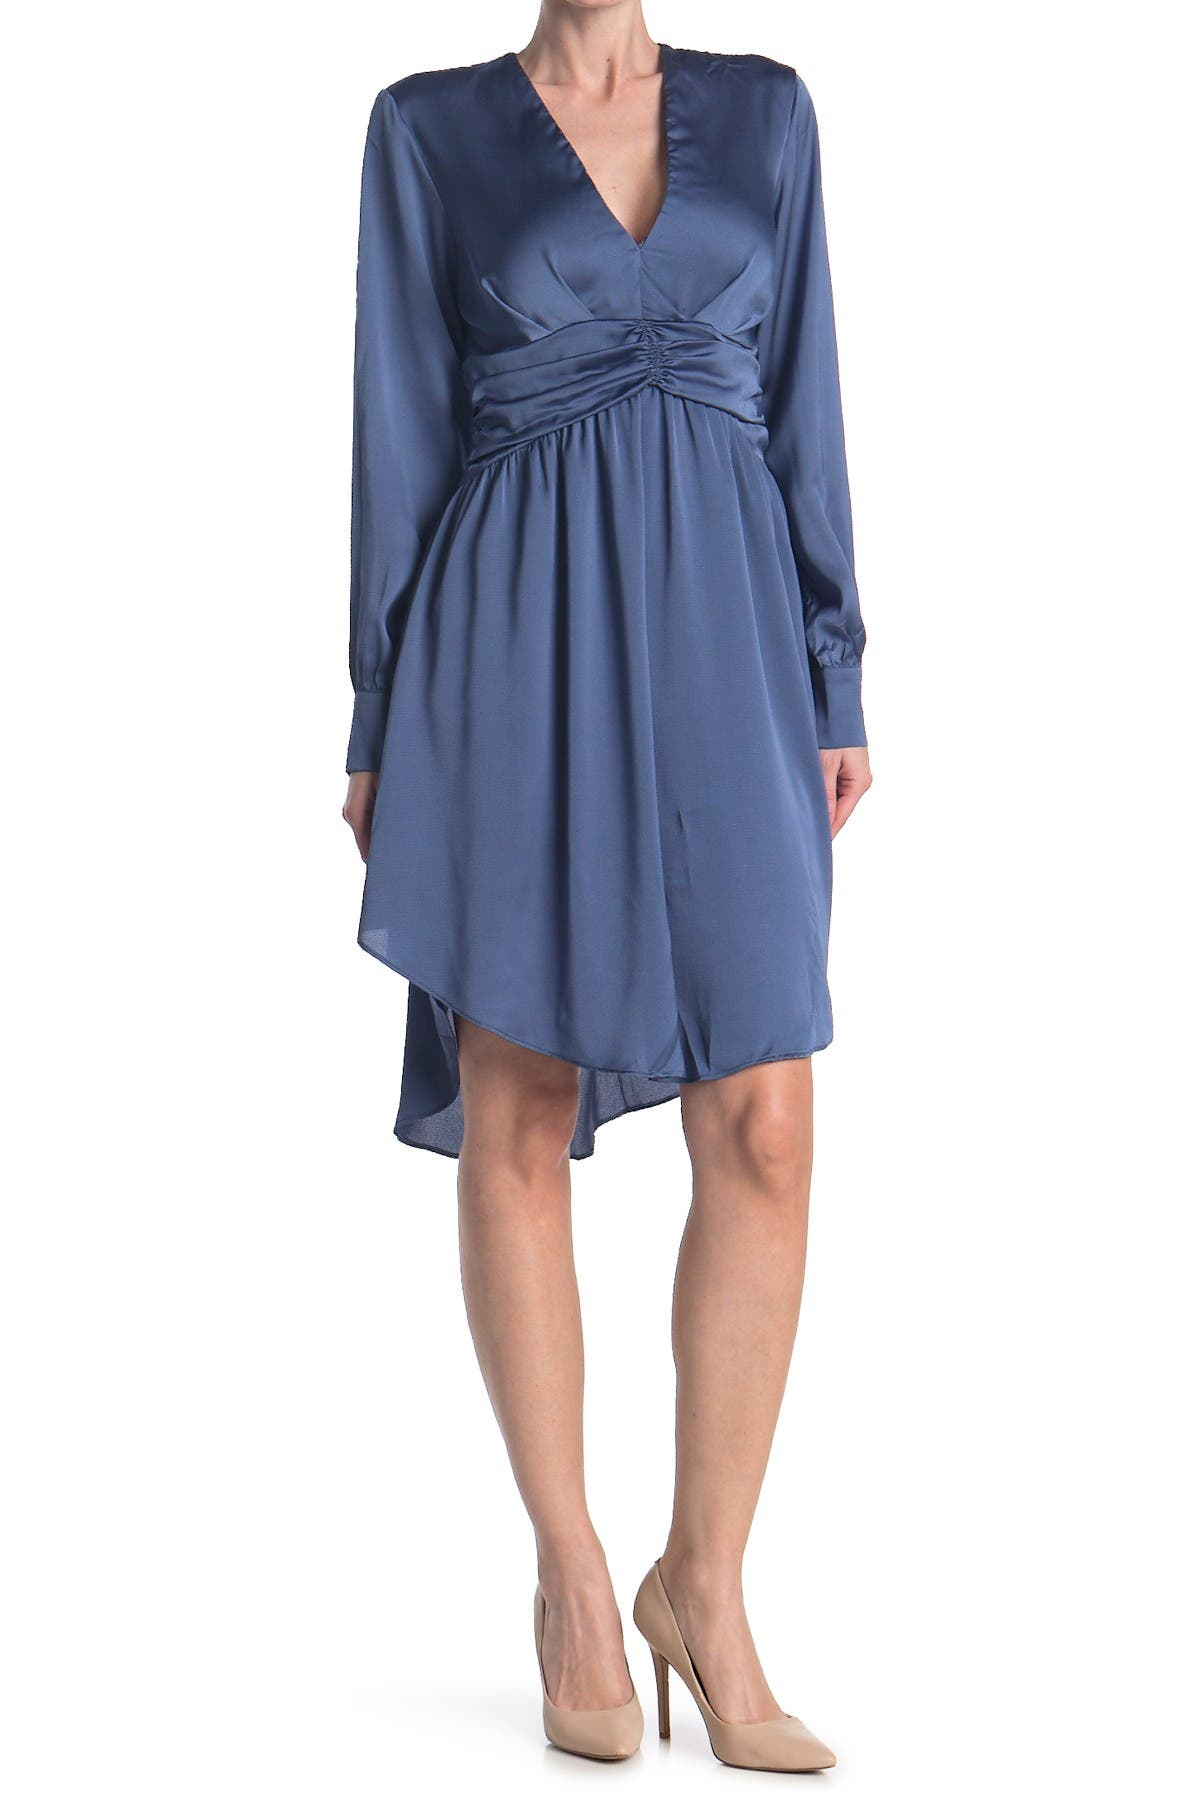 Image of Do + Be Bow Front High/Low Dress